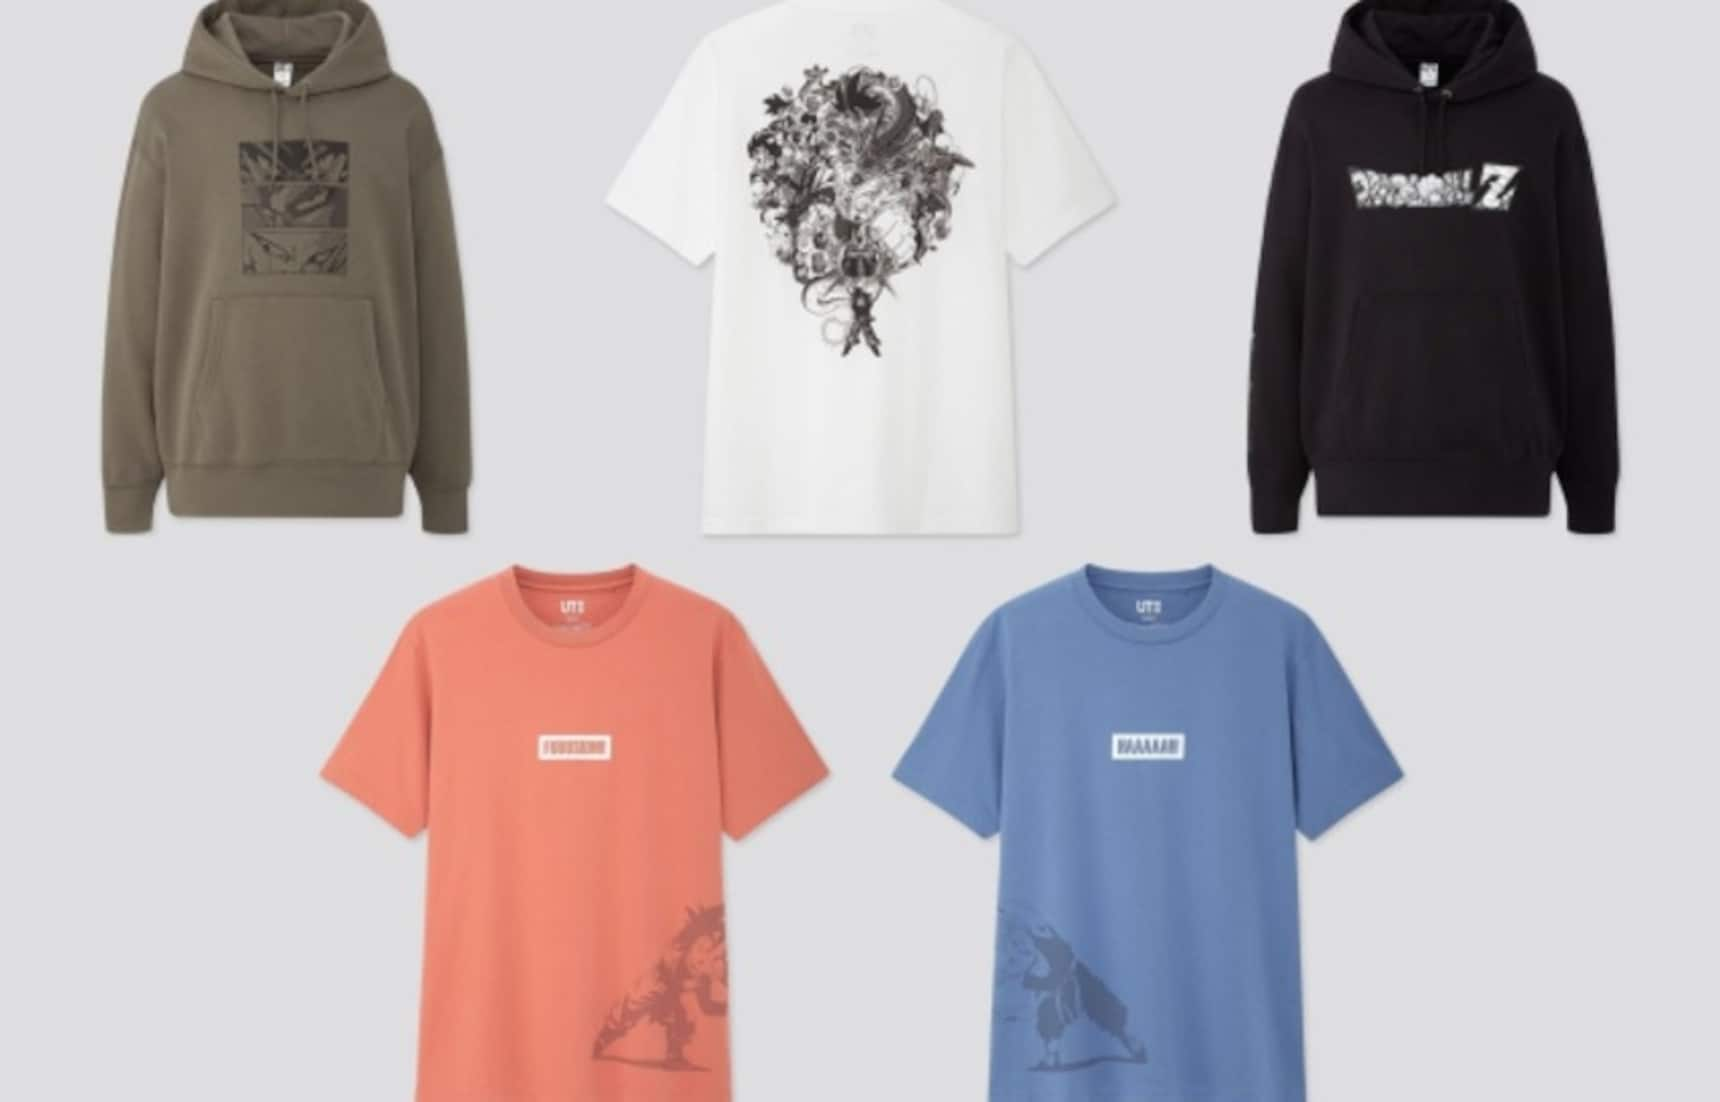 Power Up This Fall With Uniqlo's DBZ Wear